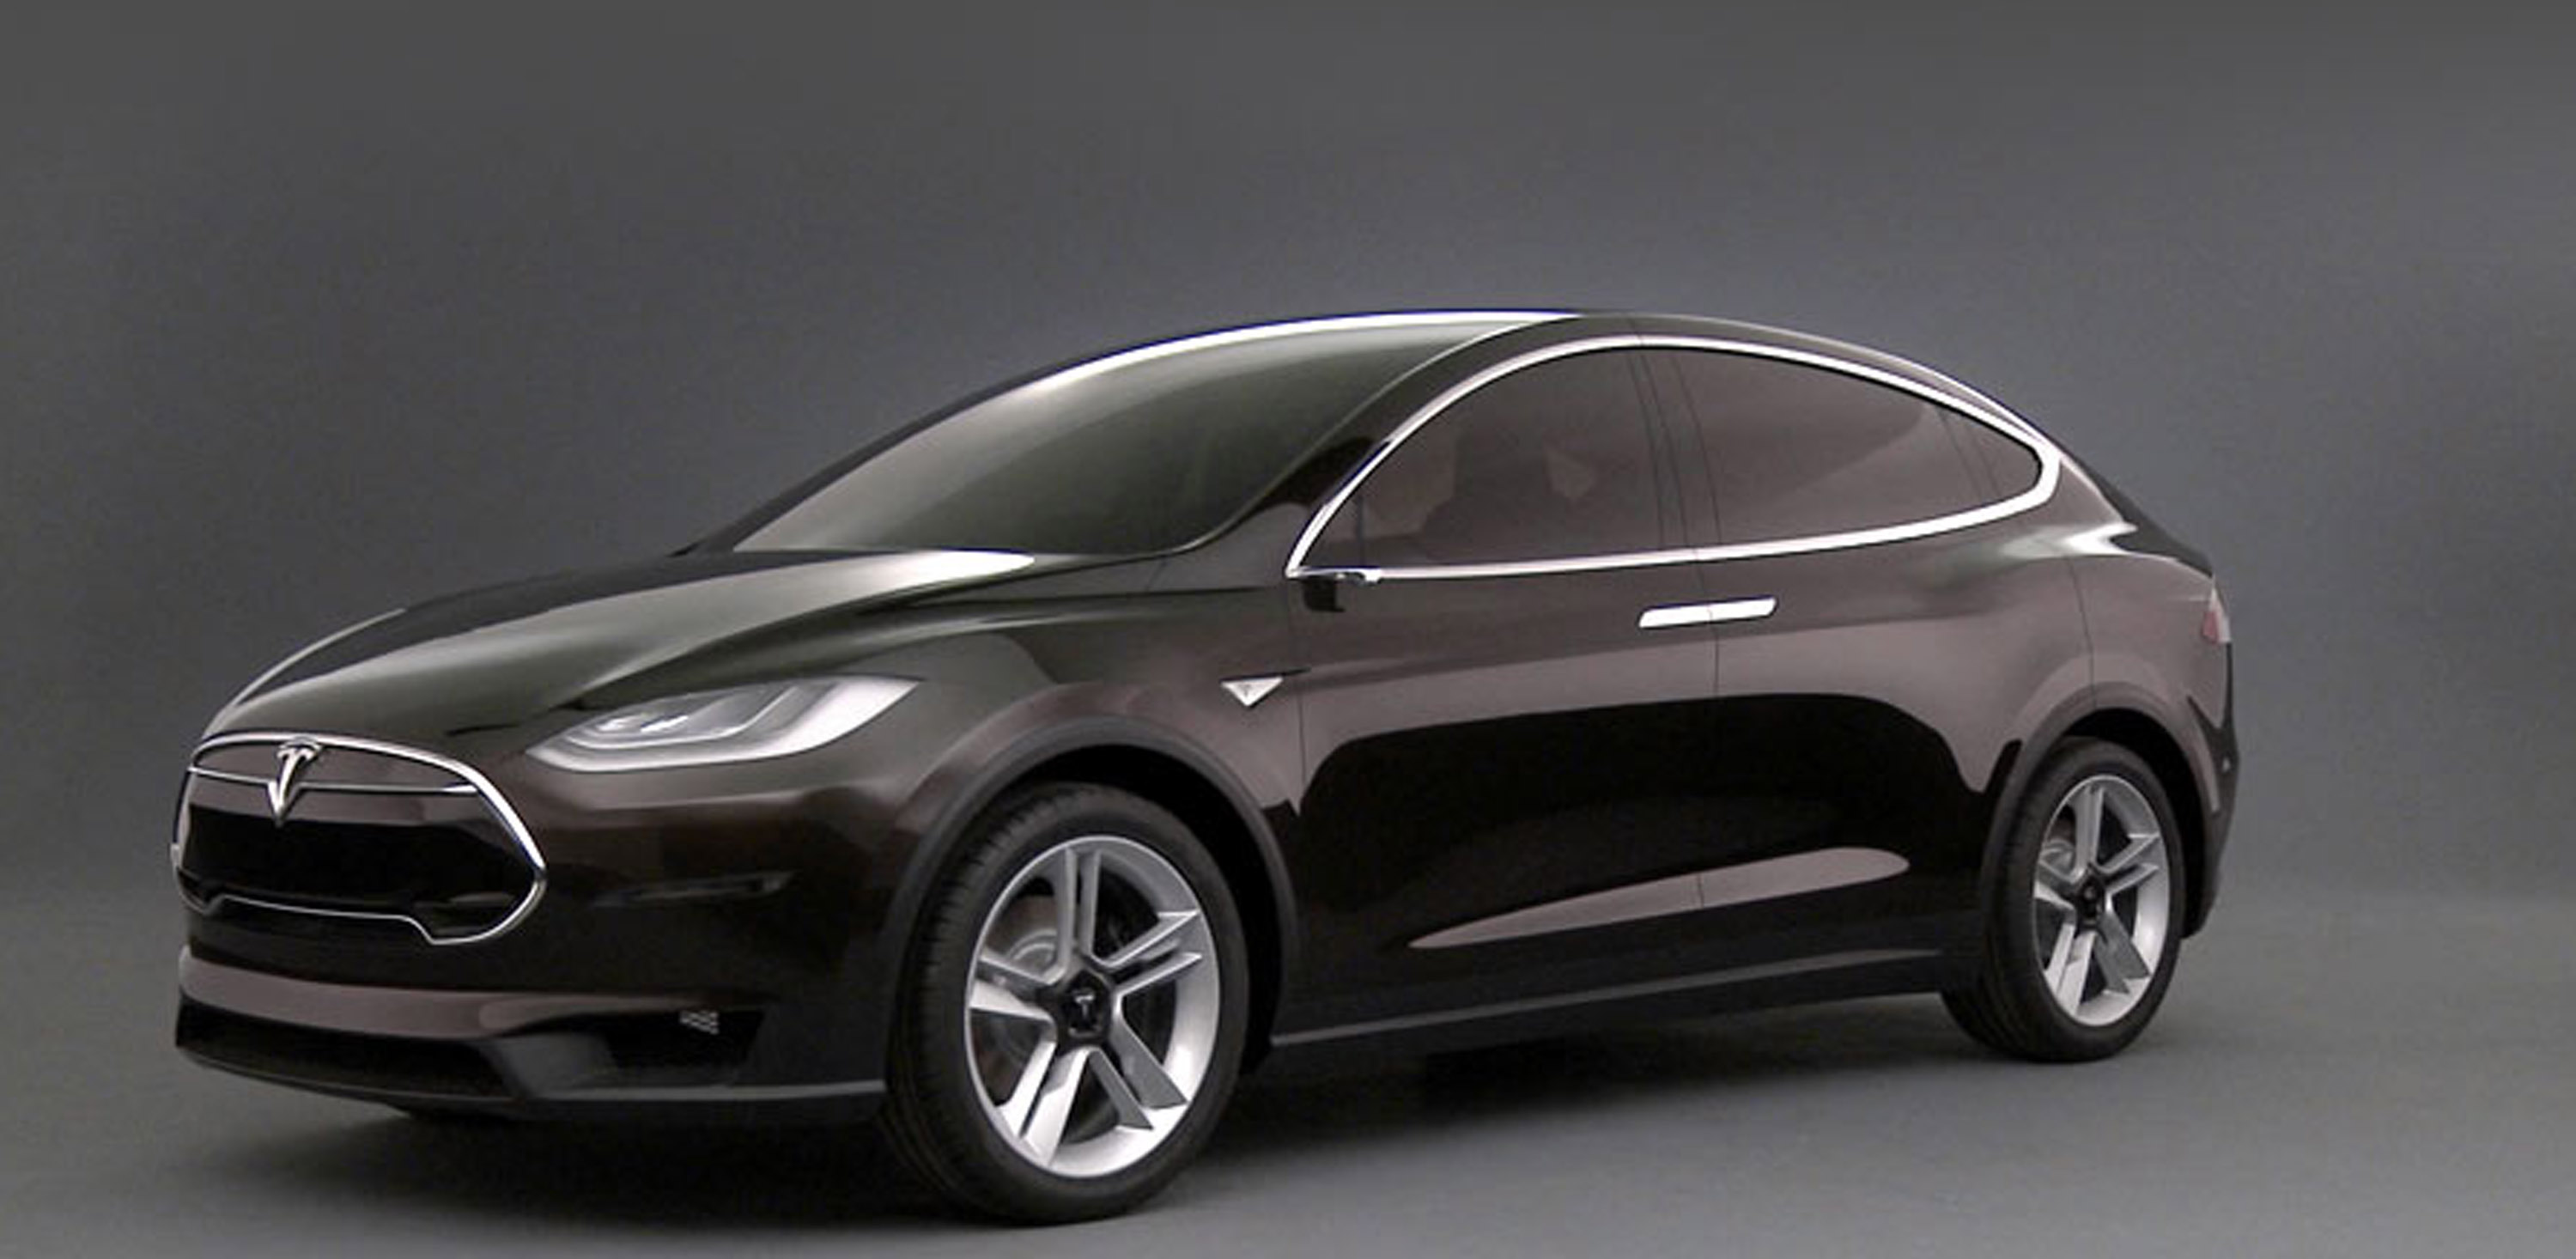 Tesla Y Image: 2015 Tesla Model X Comes With Revolutionary Features